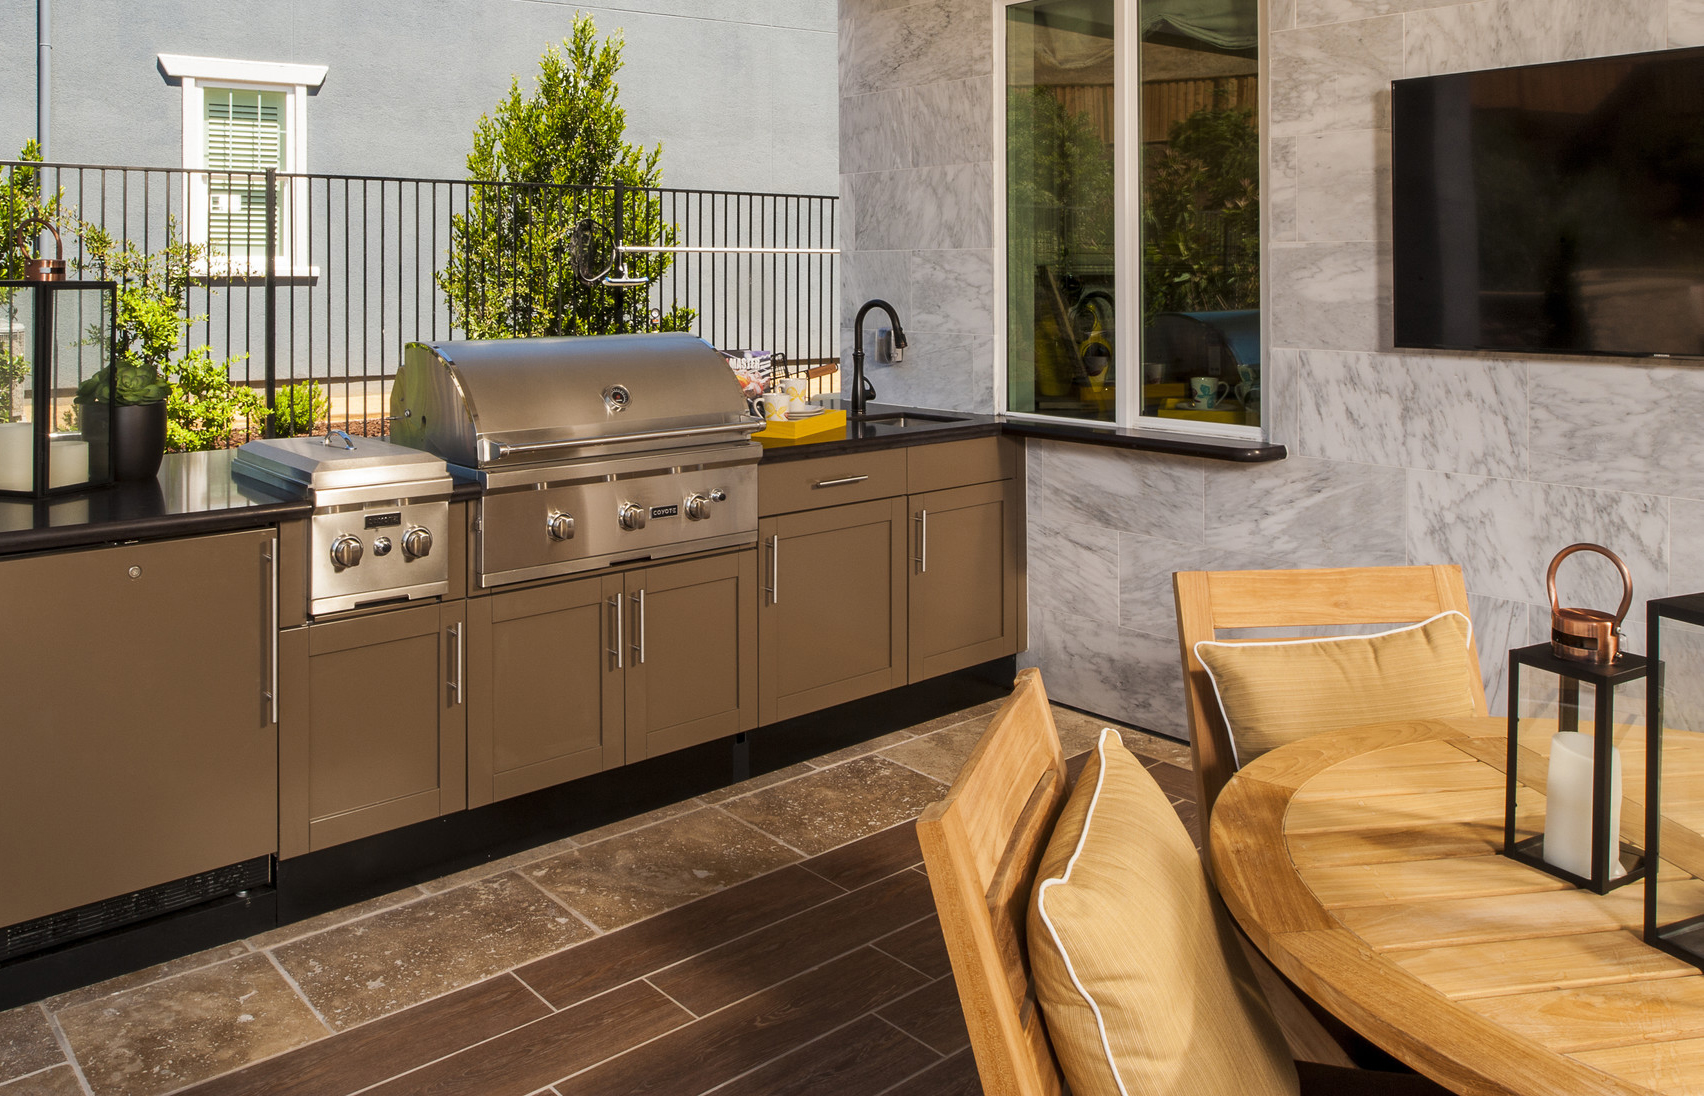 Outdoor Stainless Steel Cabinets Stainless Steel Base Cabinets For Outdoor Kitchens Danver